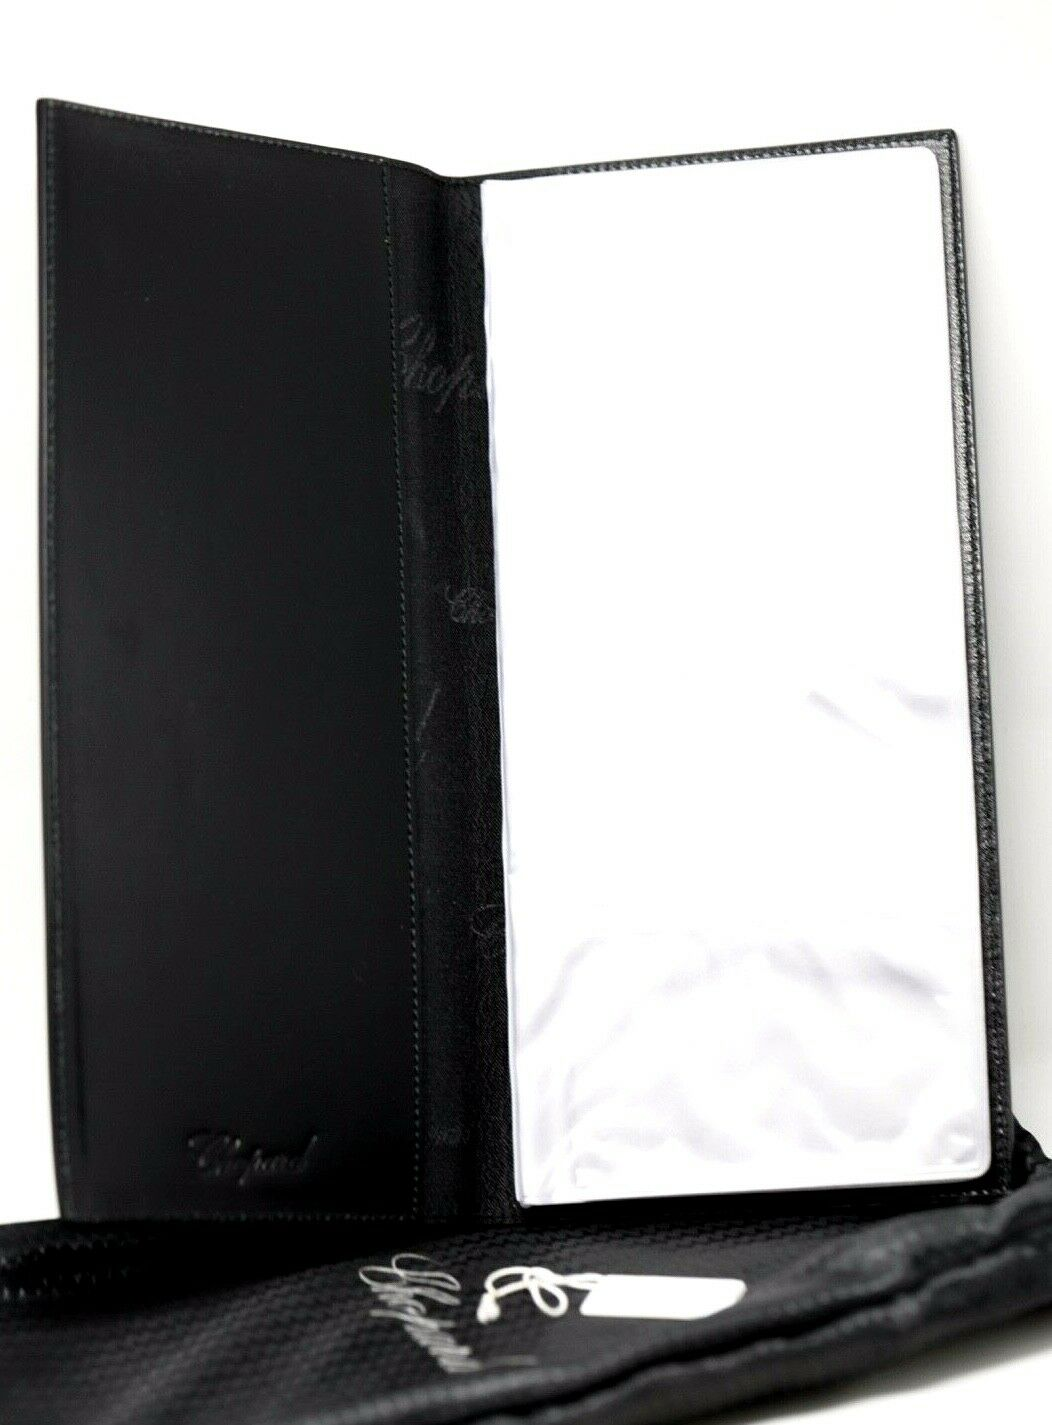 Chopard 95 7056 Black Leather Rubber 72 Business Card Holder Long 475x10 123703193183 5